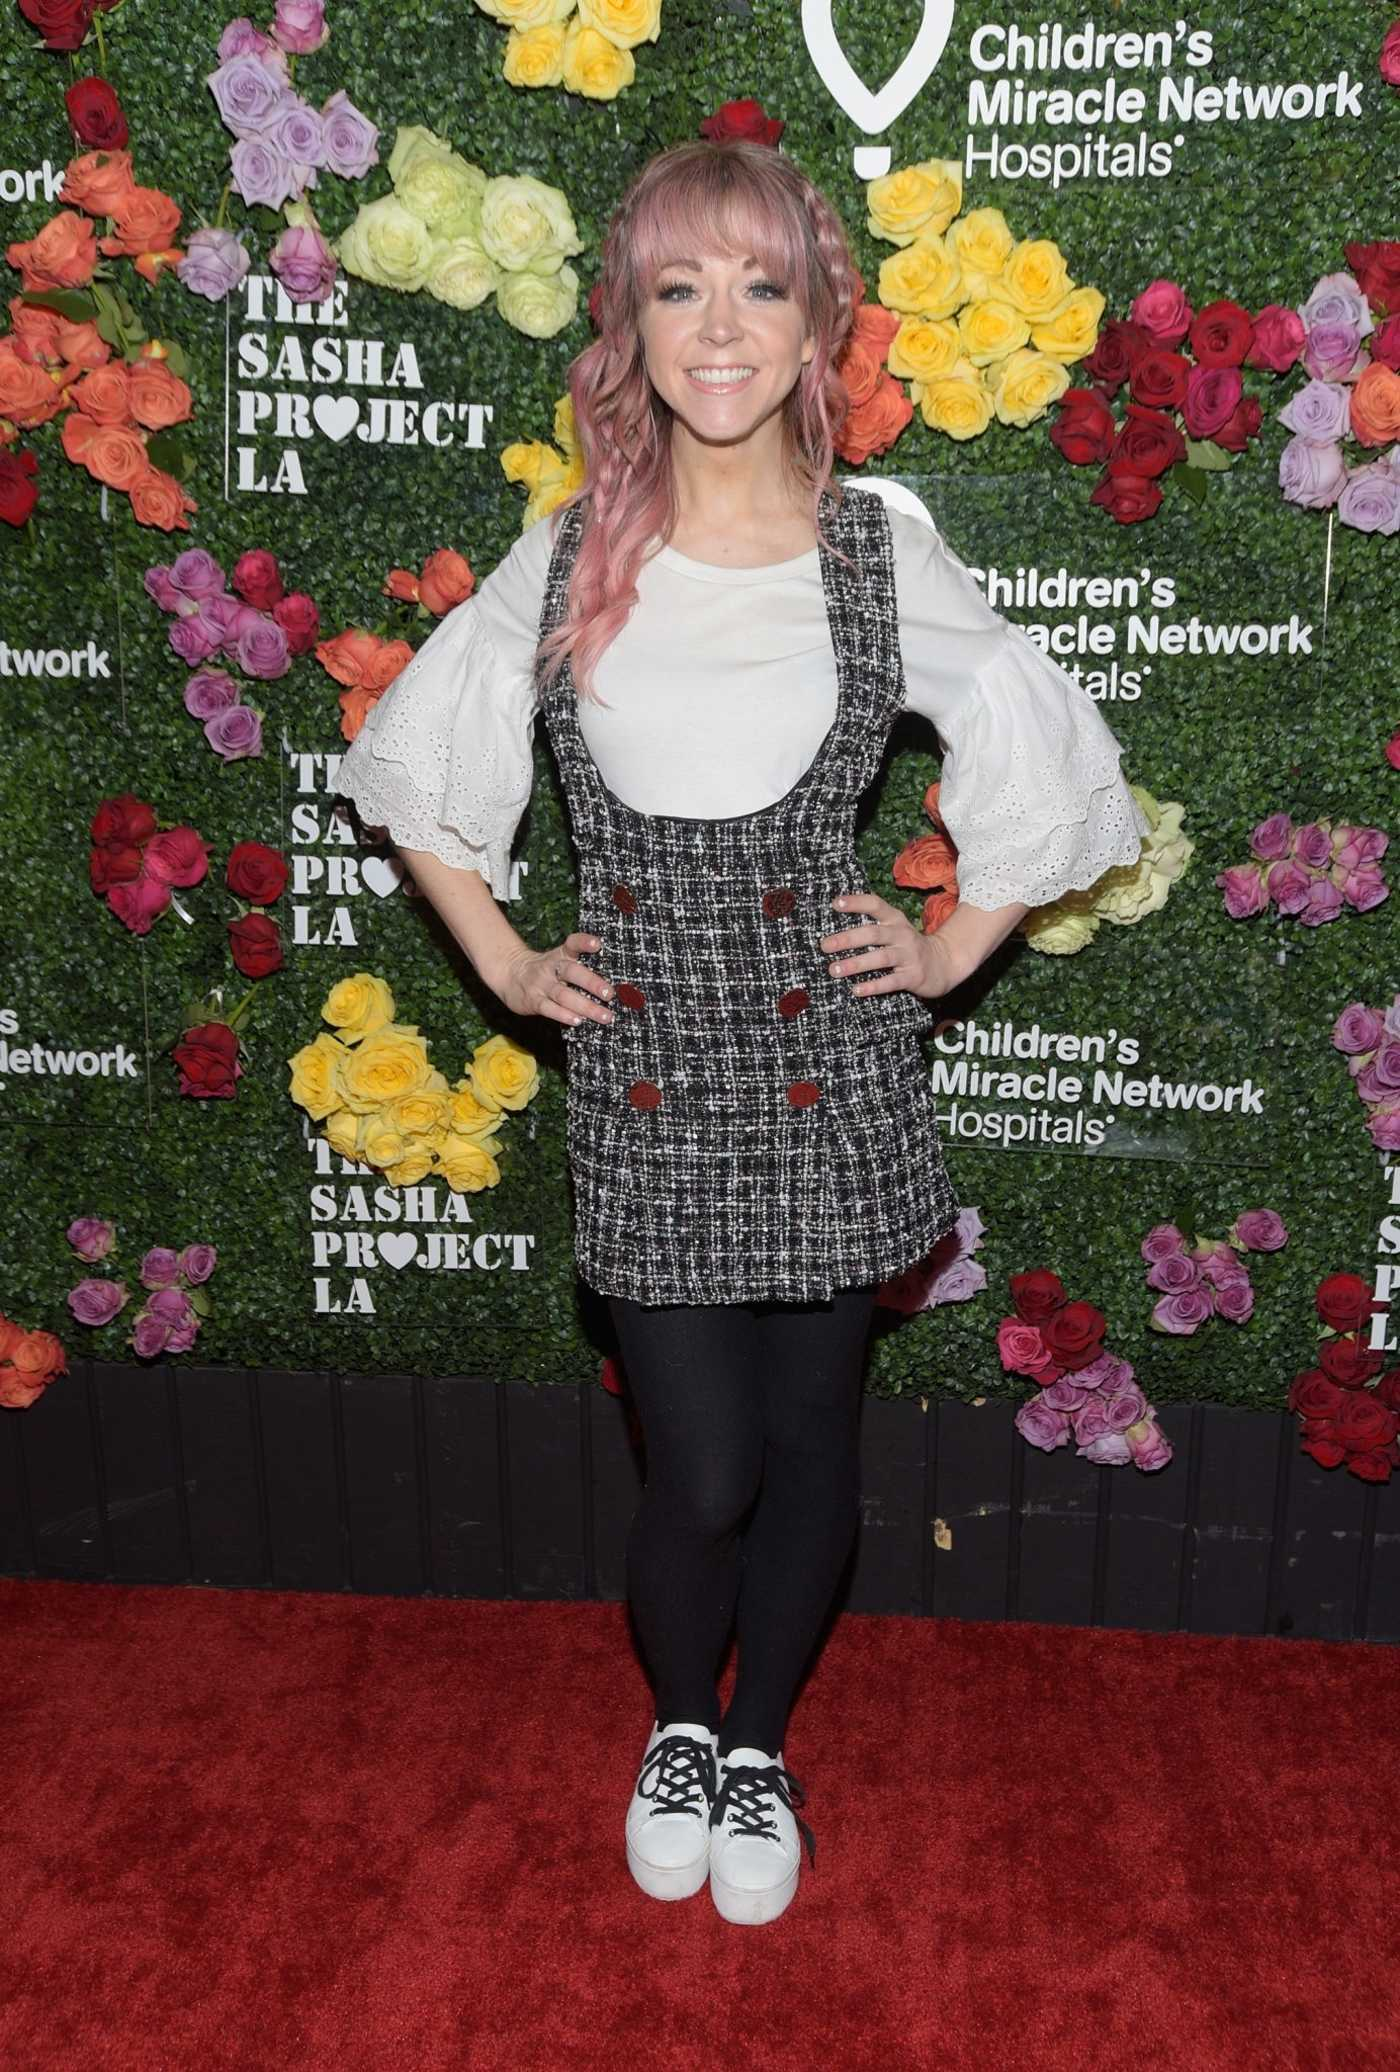 Lindsey Stirling Attends Rock The Runway Presented by Children's Miracle Network Hospitals in Hollywood 10/13/2018